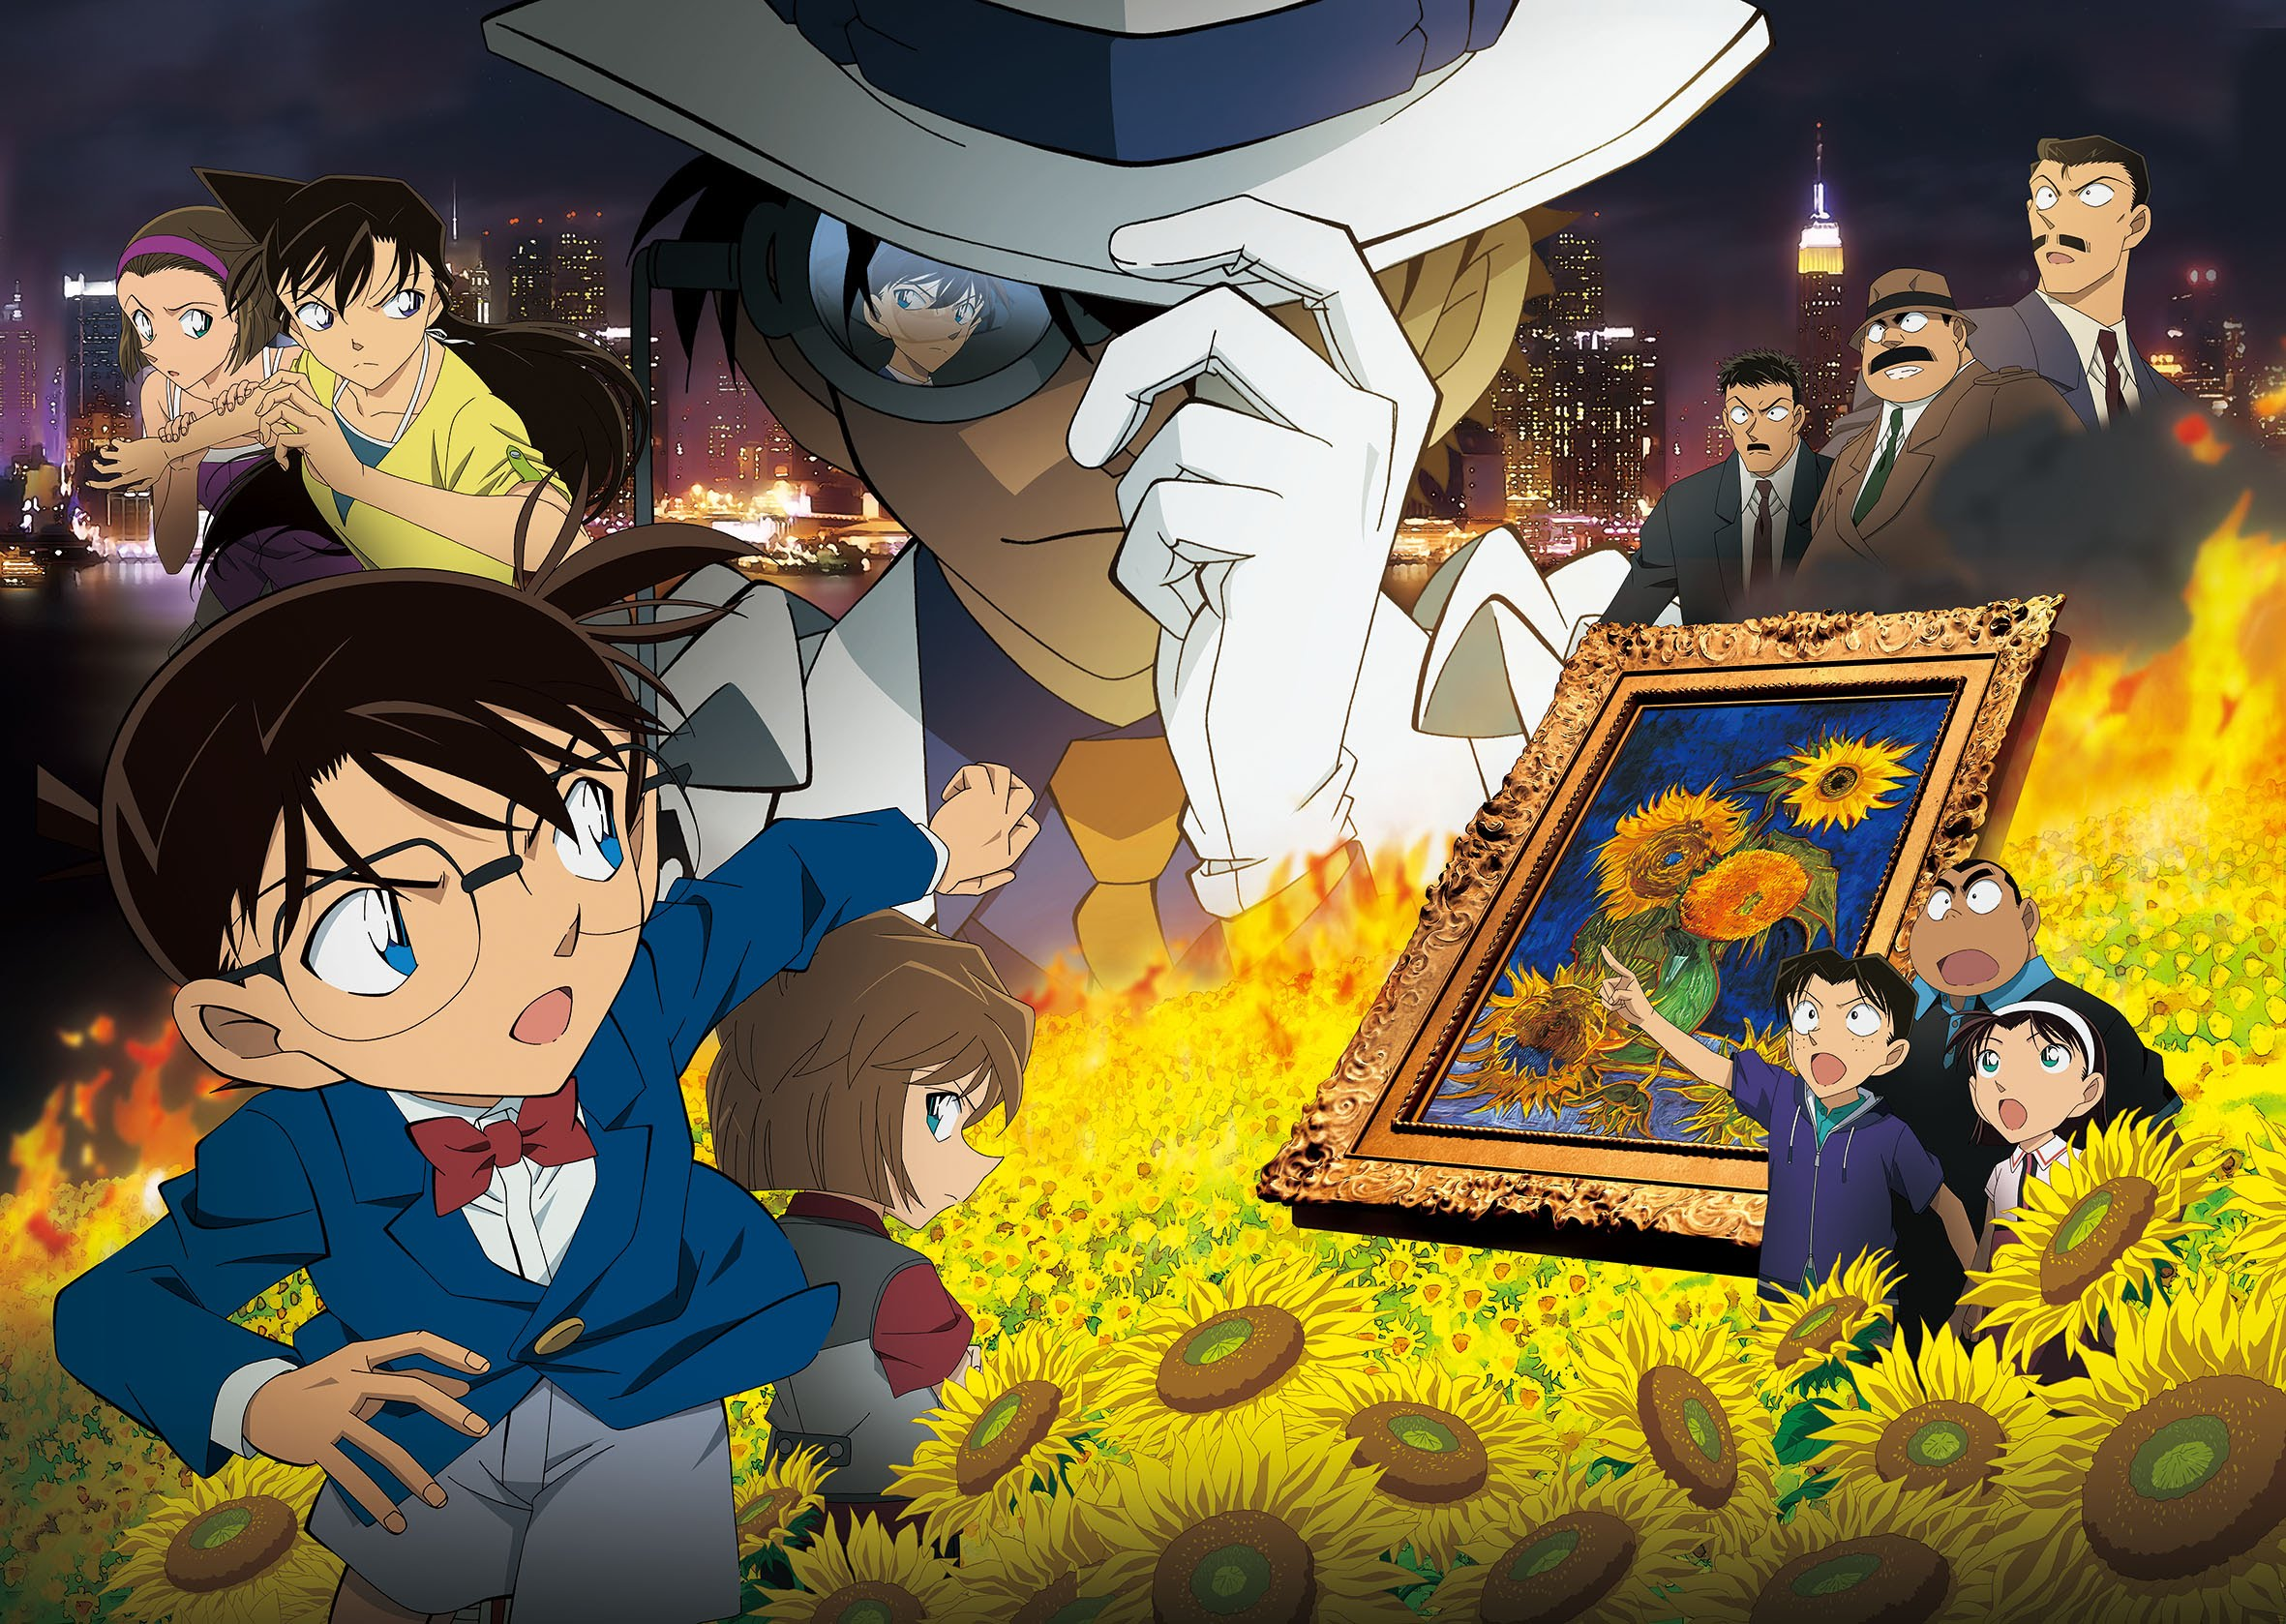 Detective Conan Movie 19 The Hellfire Sunflowers visual 2 haruhichan.com detective conan movie 19